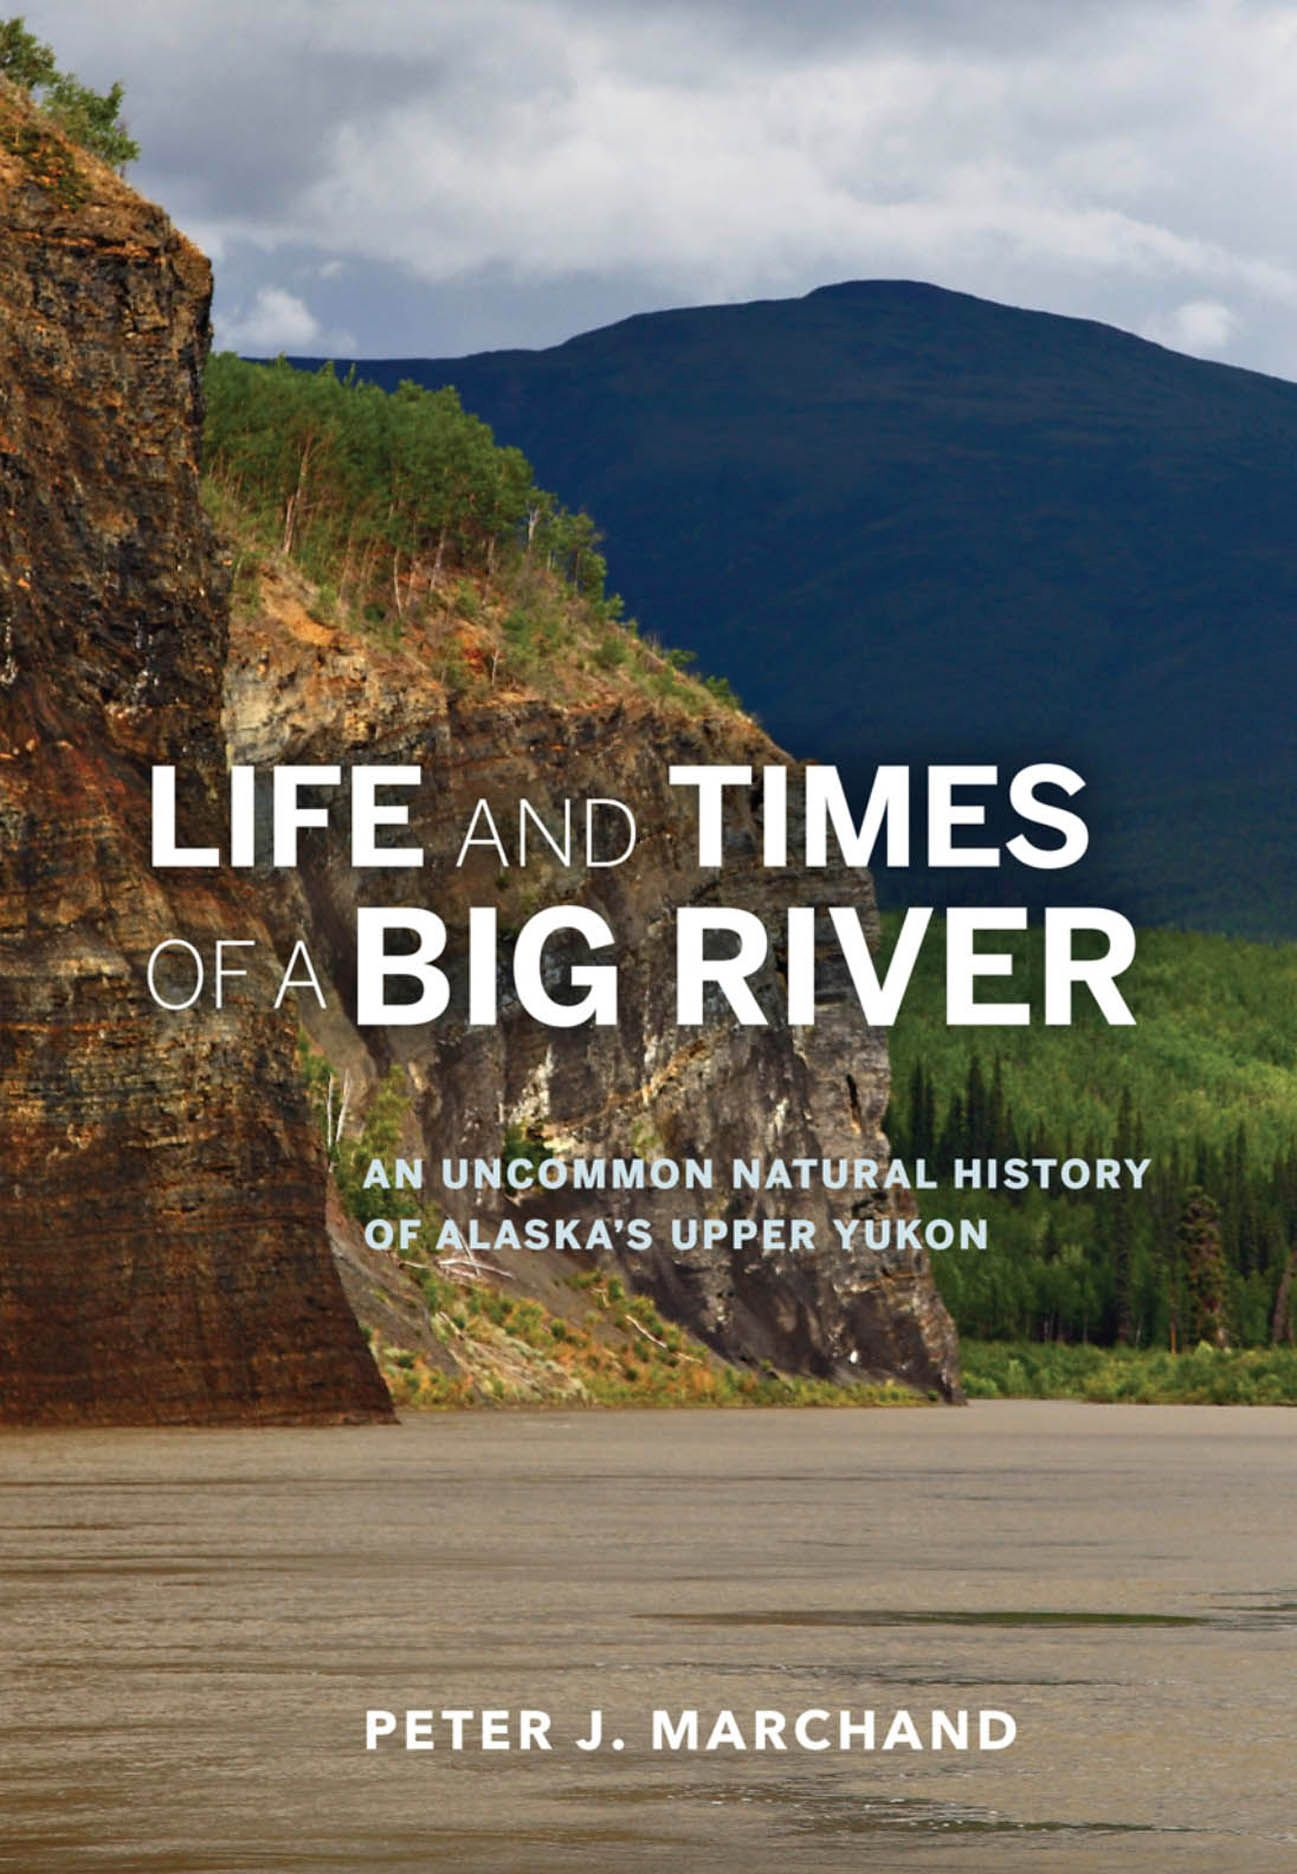 Life and Times of a Big River